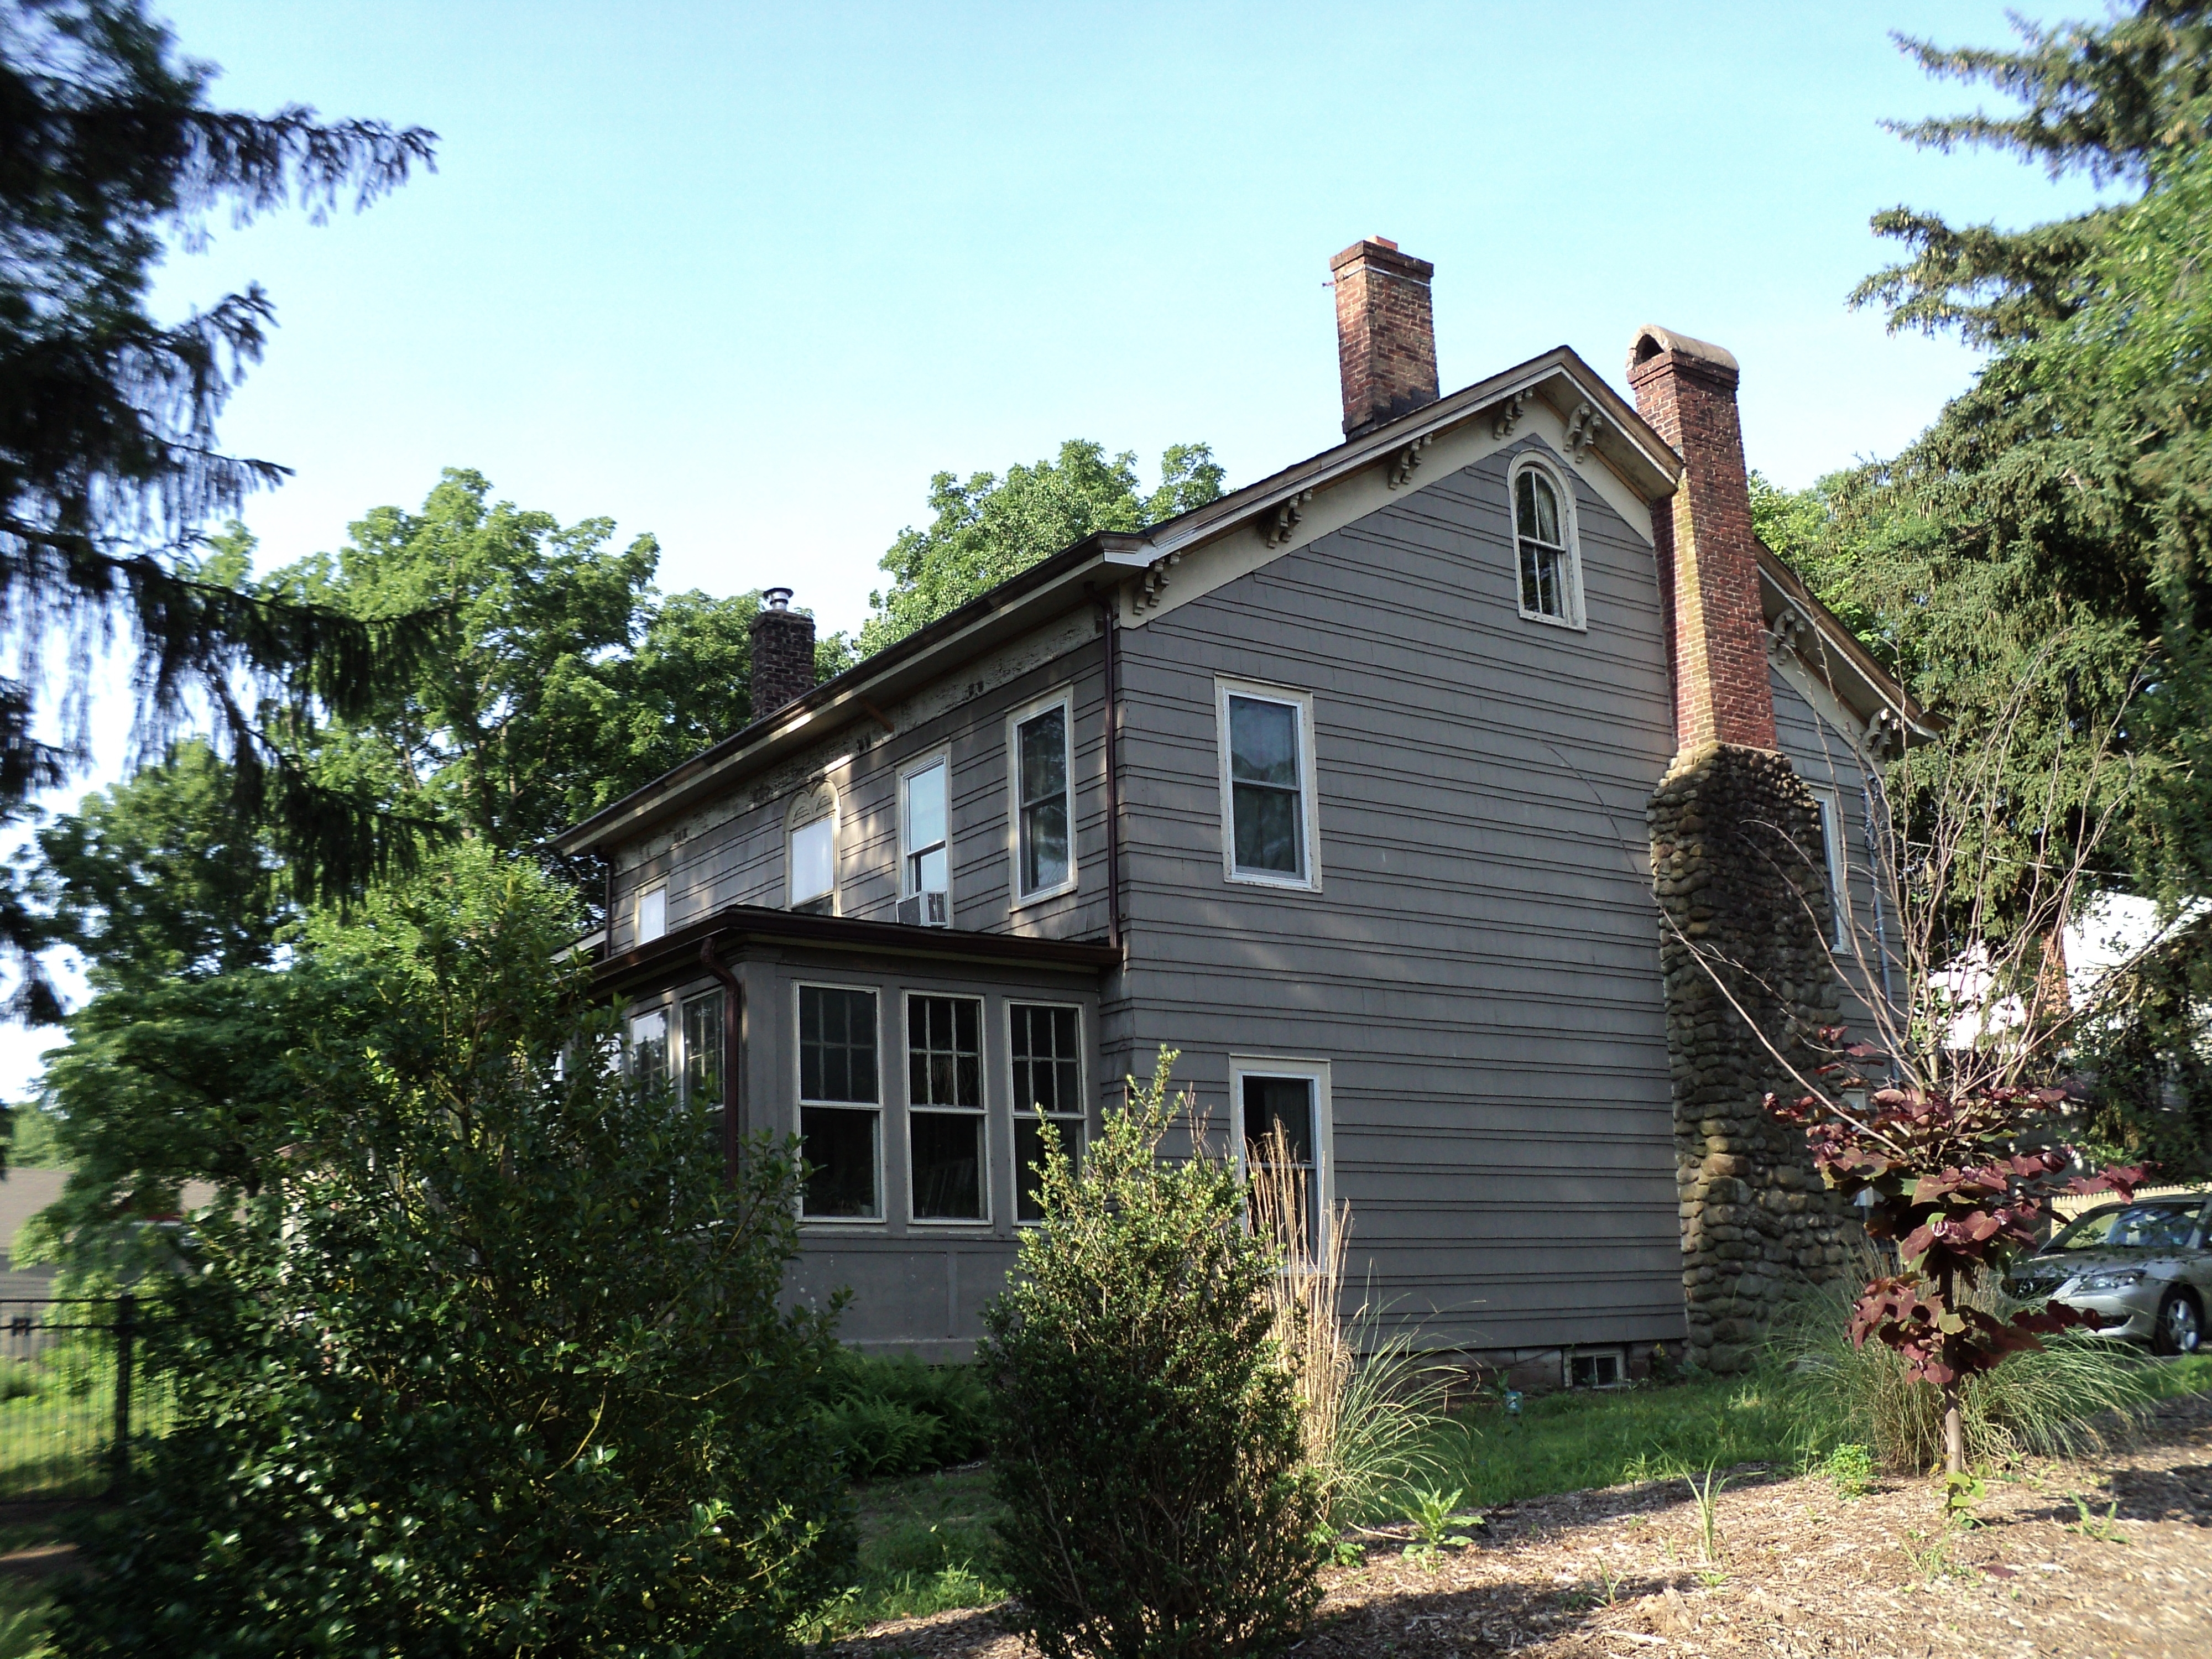 Westervelt-Demarest House